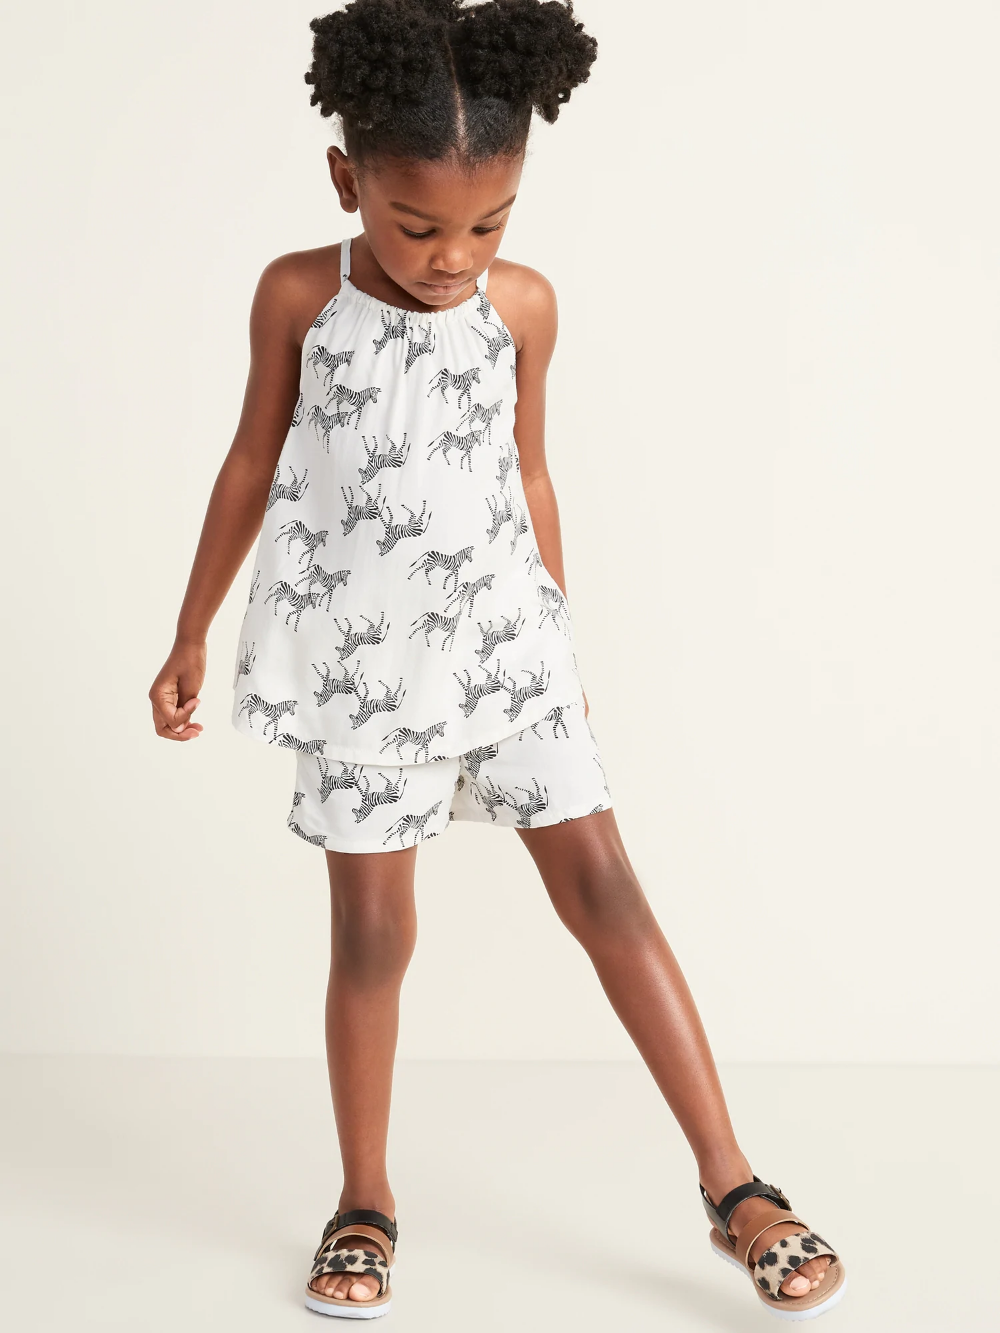 Sleeveless A Line Top Shorts Set For Toddler Girls Old Navy Girls Clothes Shops Toddler Girl Outfits Toddler Girl [ 1333 x 1000 Pixel ]